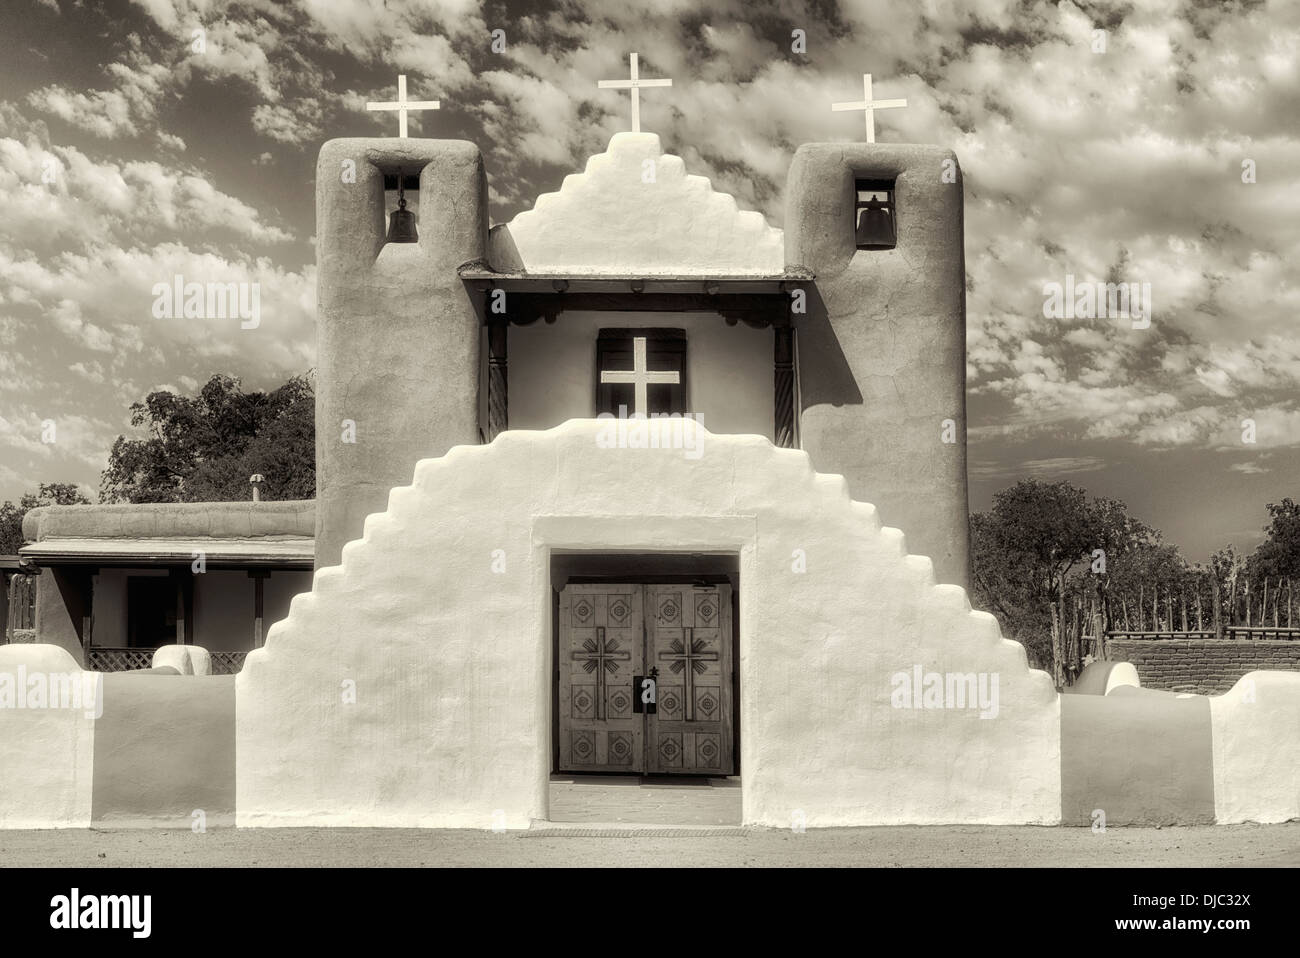 San Geronimo Church in Pueblo de Taos. Taos, New Mexico. - Stock Image